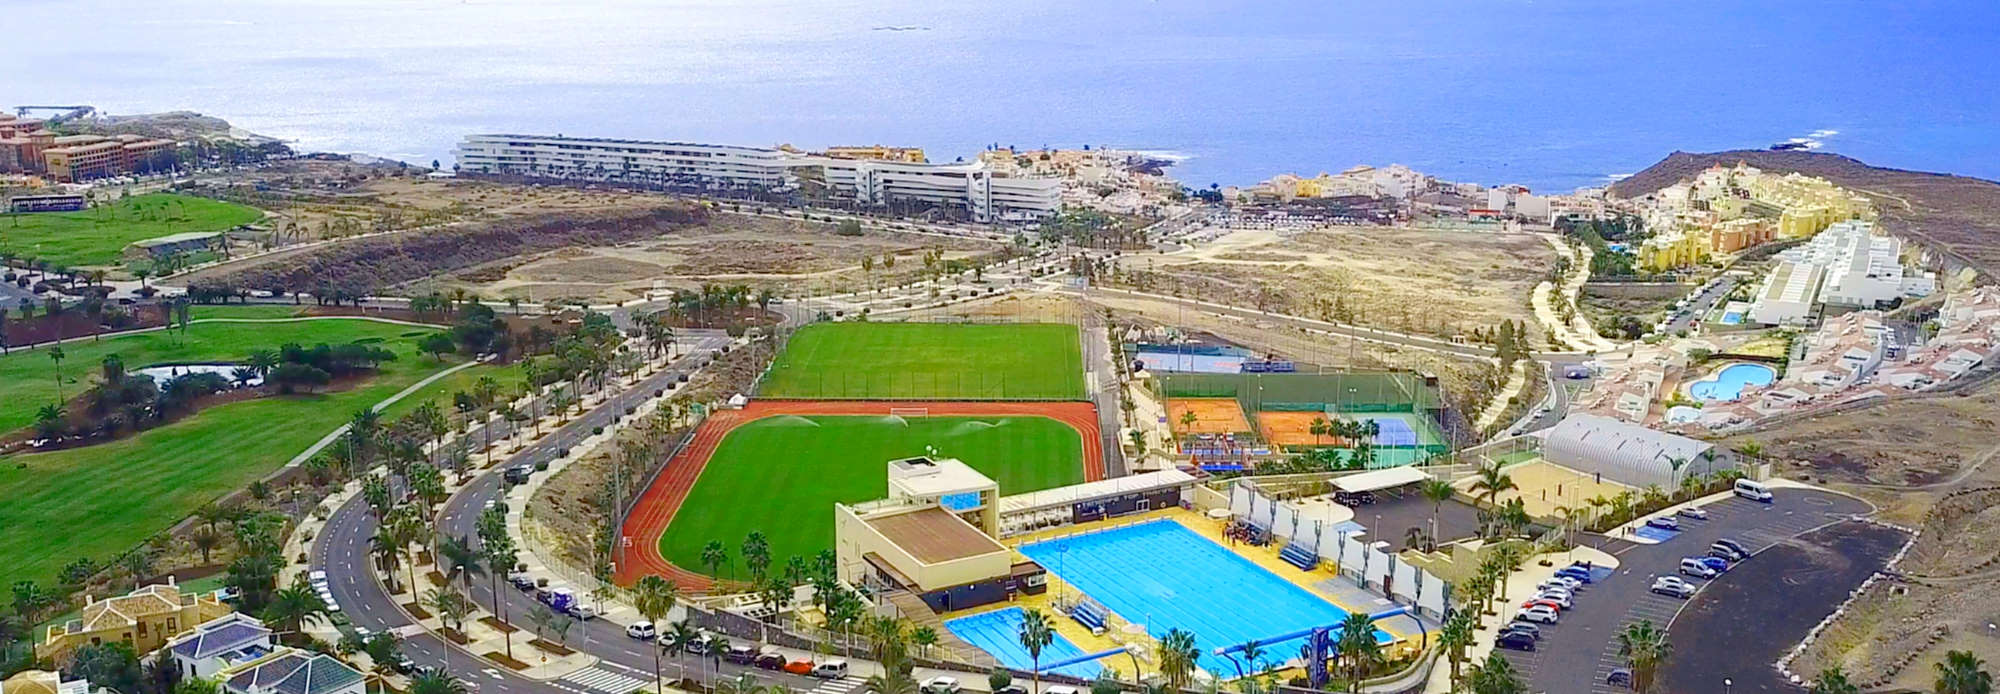 Aerial view of Tenerife Top Training the best sports group retreat for fitness holidays in Europe